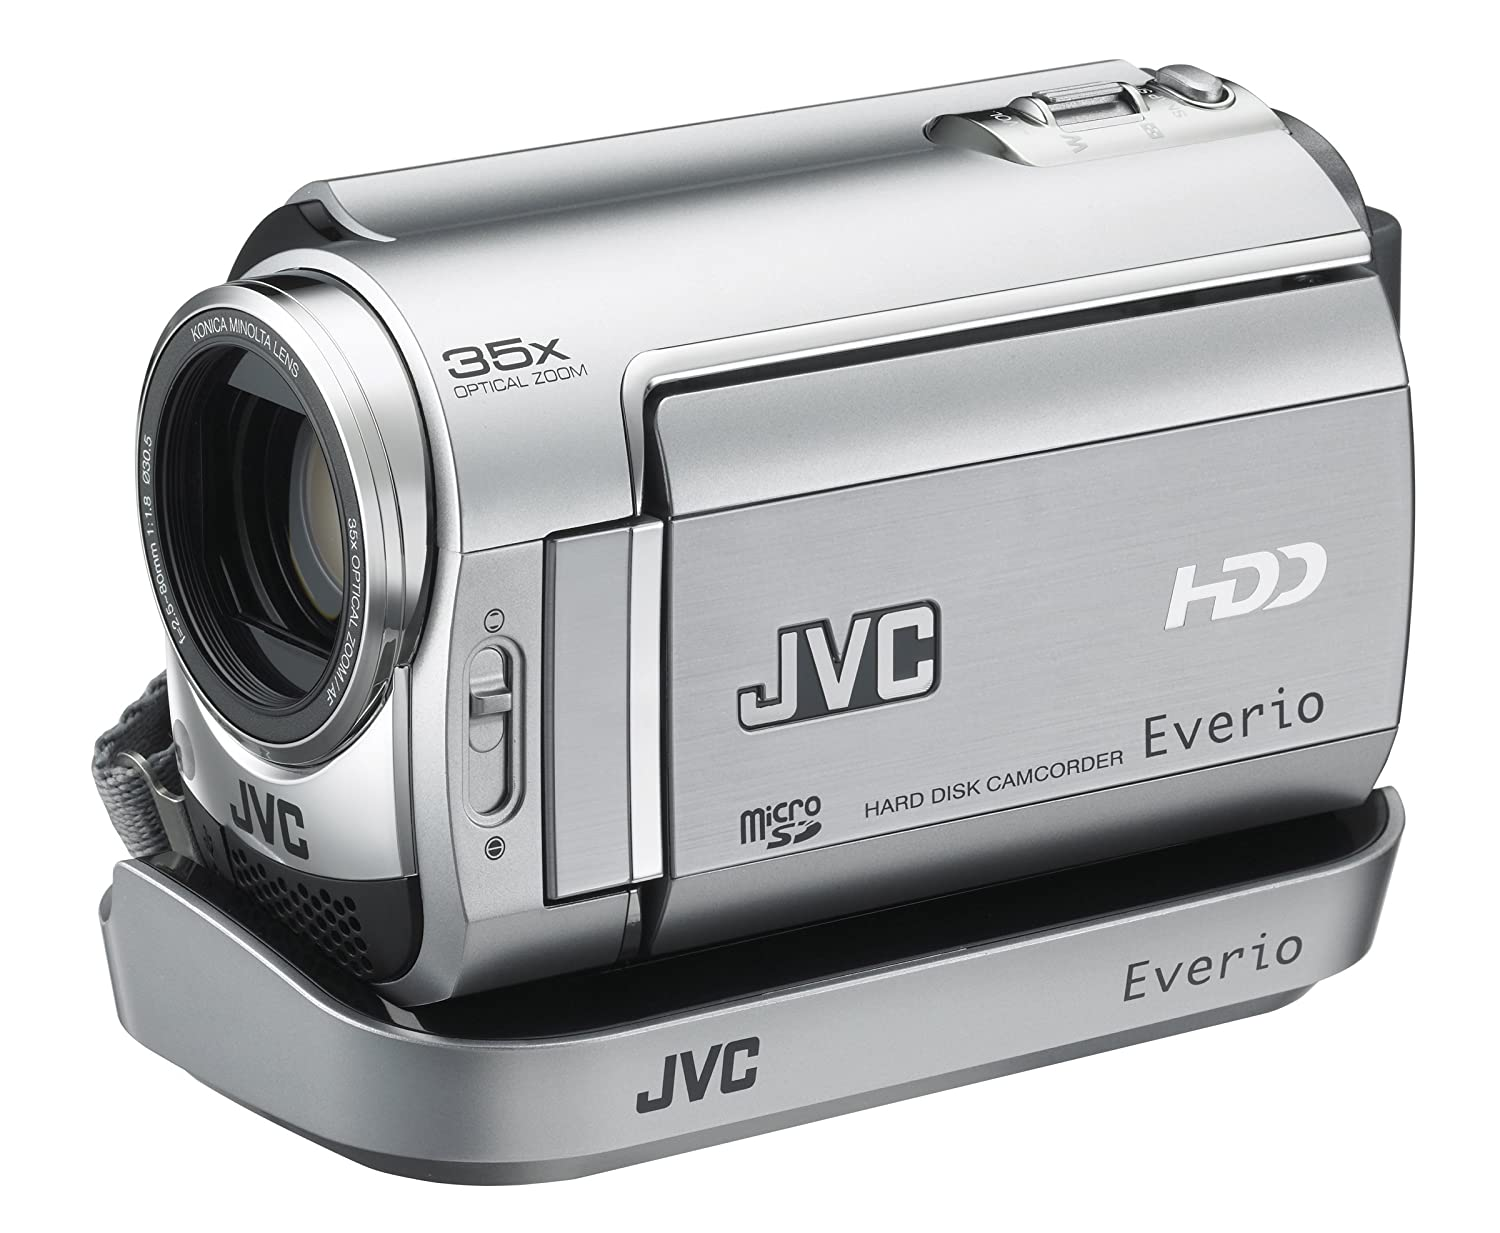 amazon com jvc everio gz mg330 30 gb hard disk drive camcorder rh amazon com jvc everio 30gb hdd camcorder manual JVC Everio Gz E300